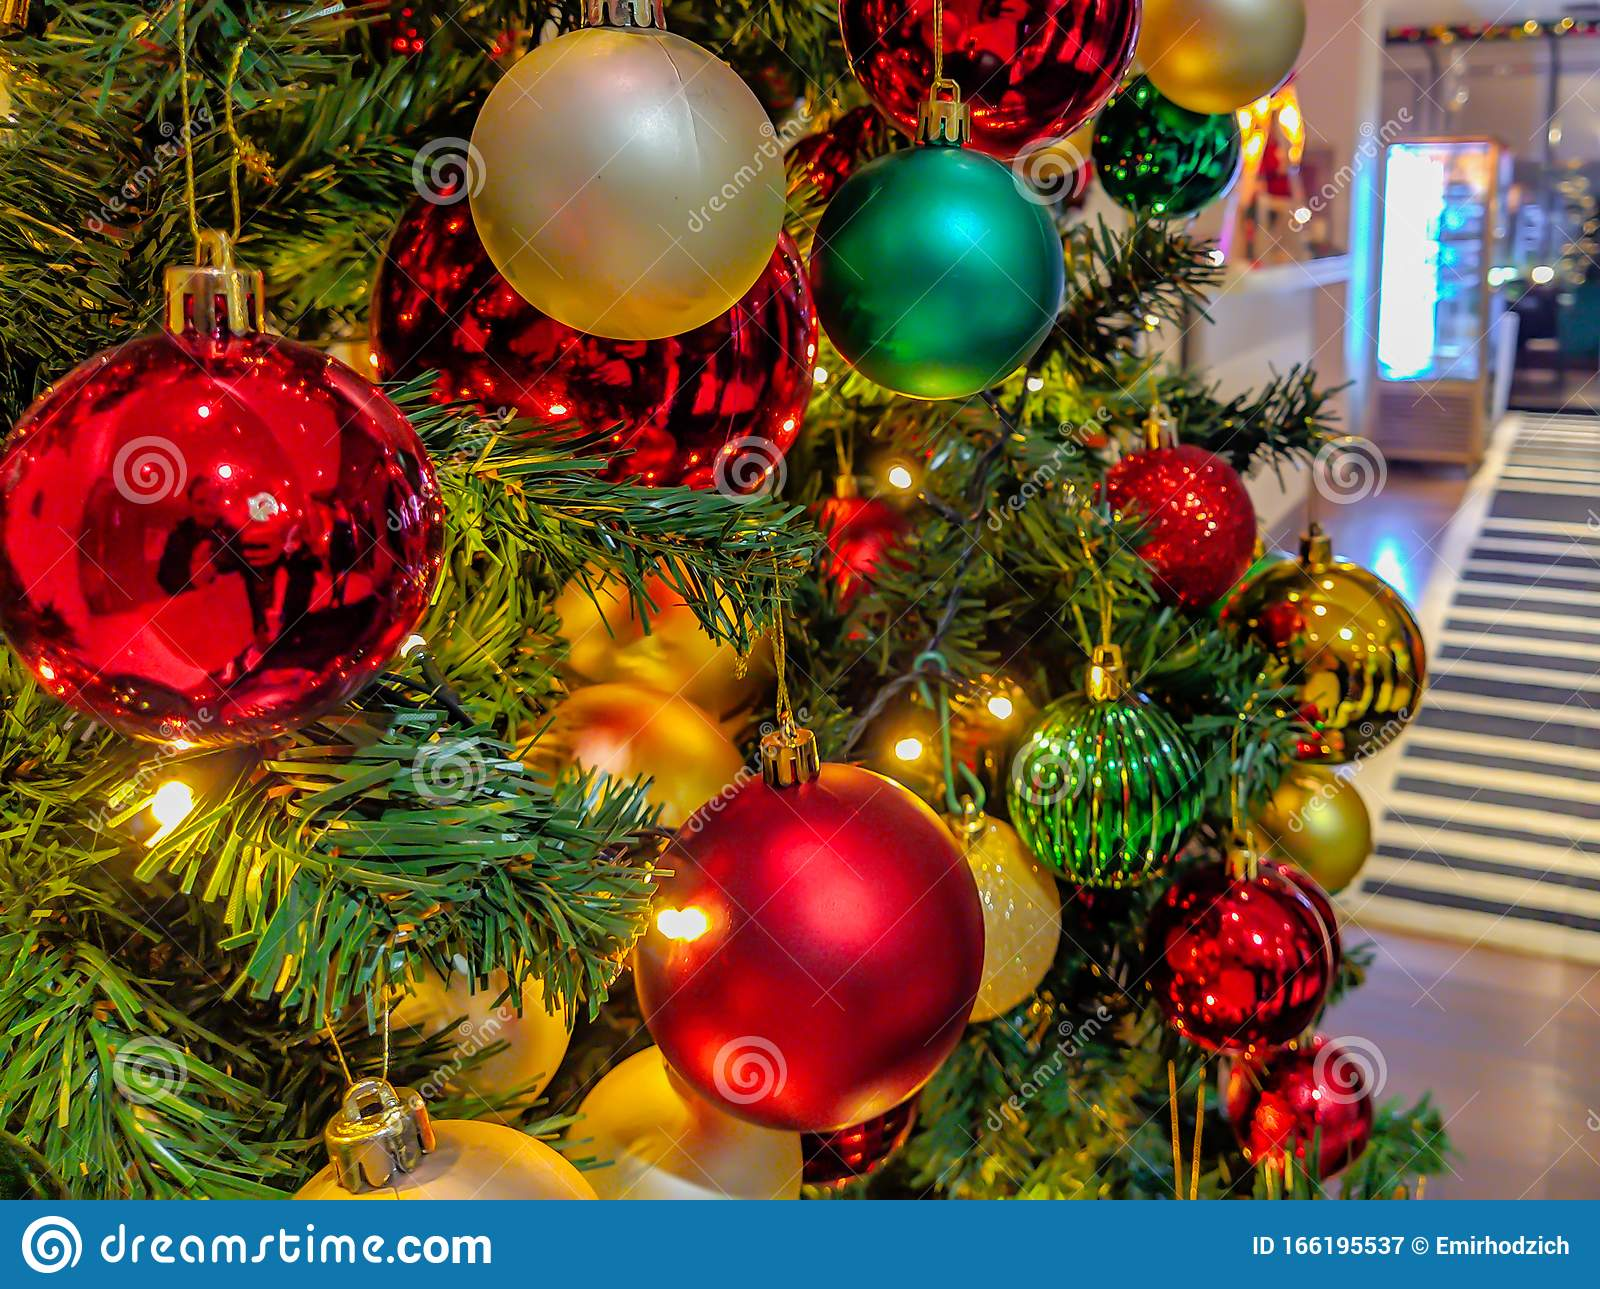 Colorful Christmas Tree Decorations And Ornaments In A Work Place Setting With Shiny And Gold Style For Winter Holidays Stock Image Image Of Background Green 166195537